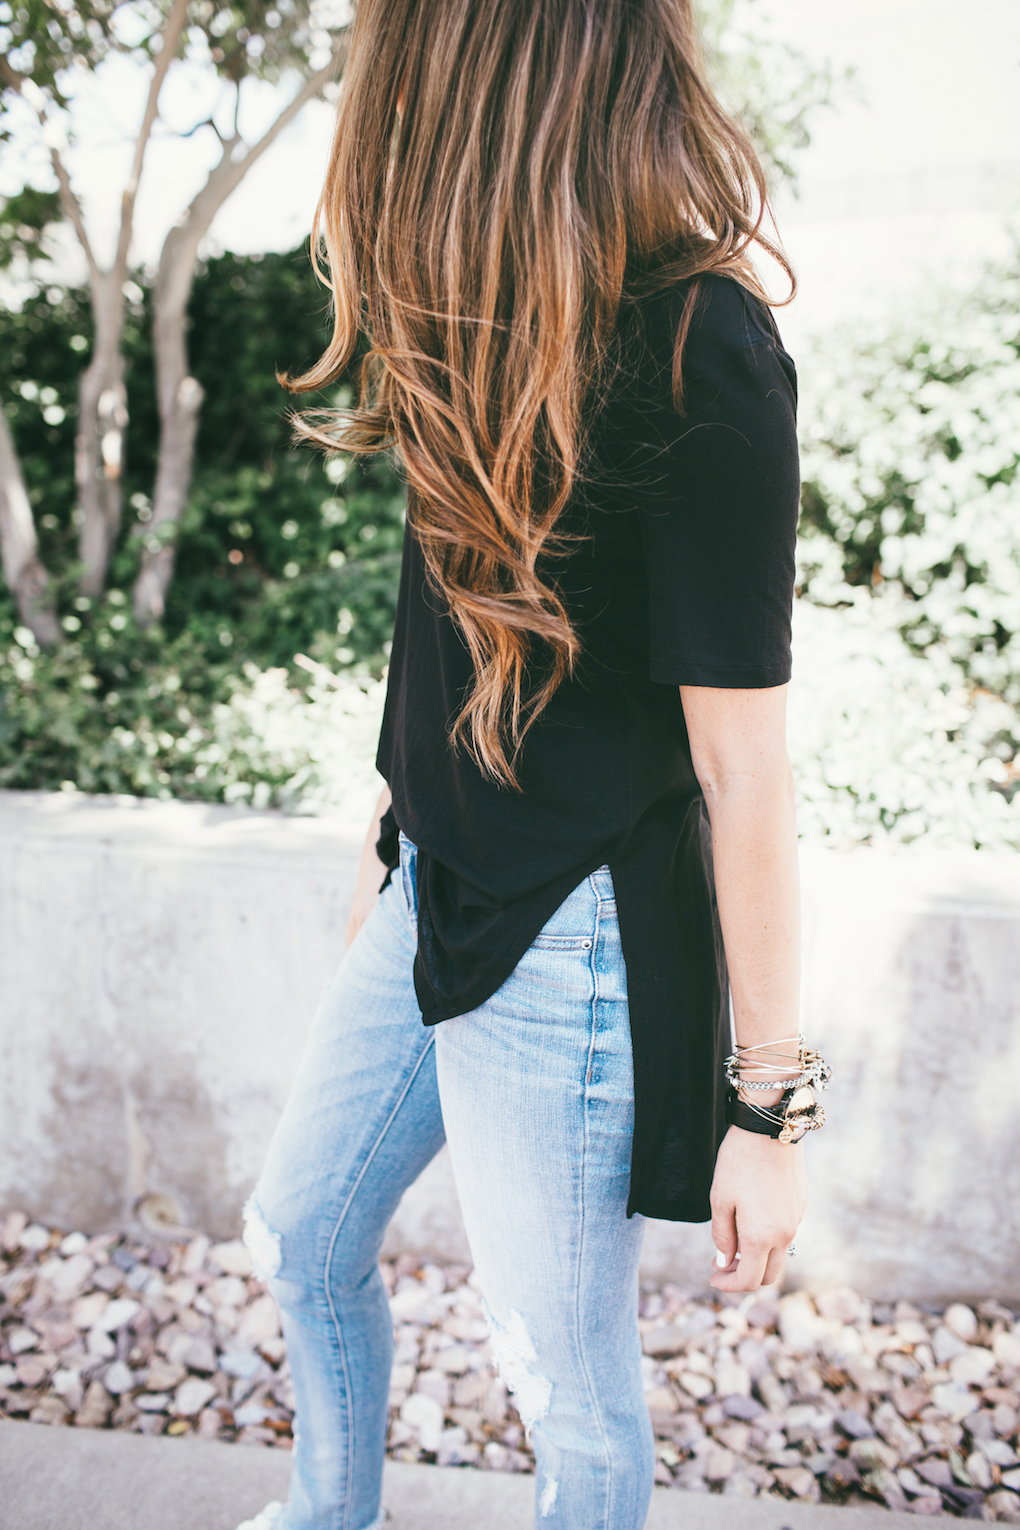 Girl in distressed denim jeans and oversized black tee shirt with loosely curled hair